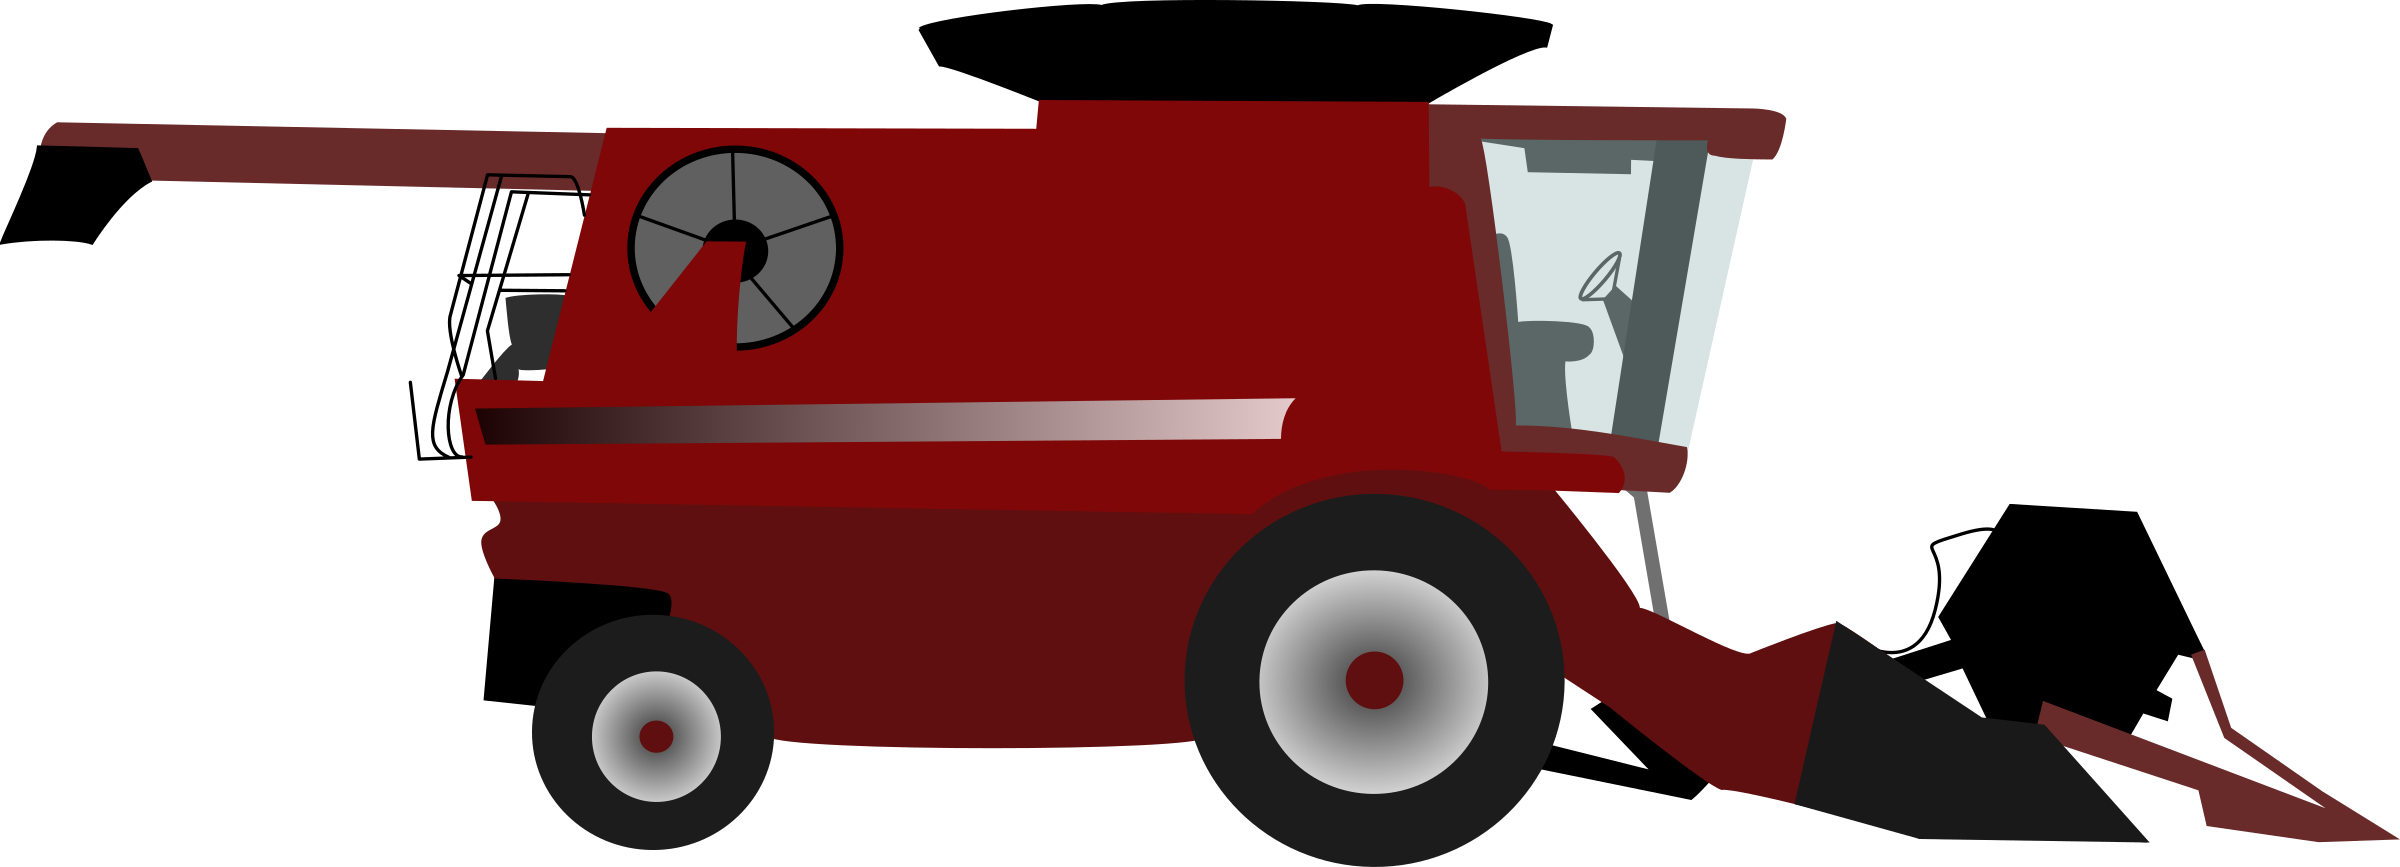 Clipart - Combine harvester